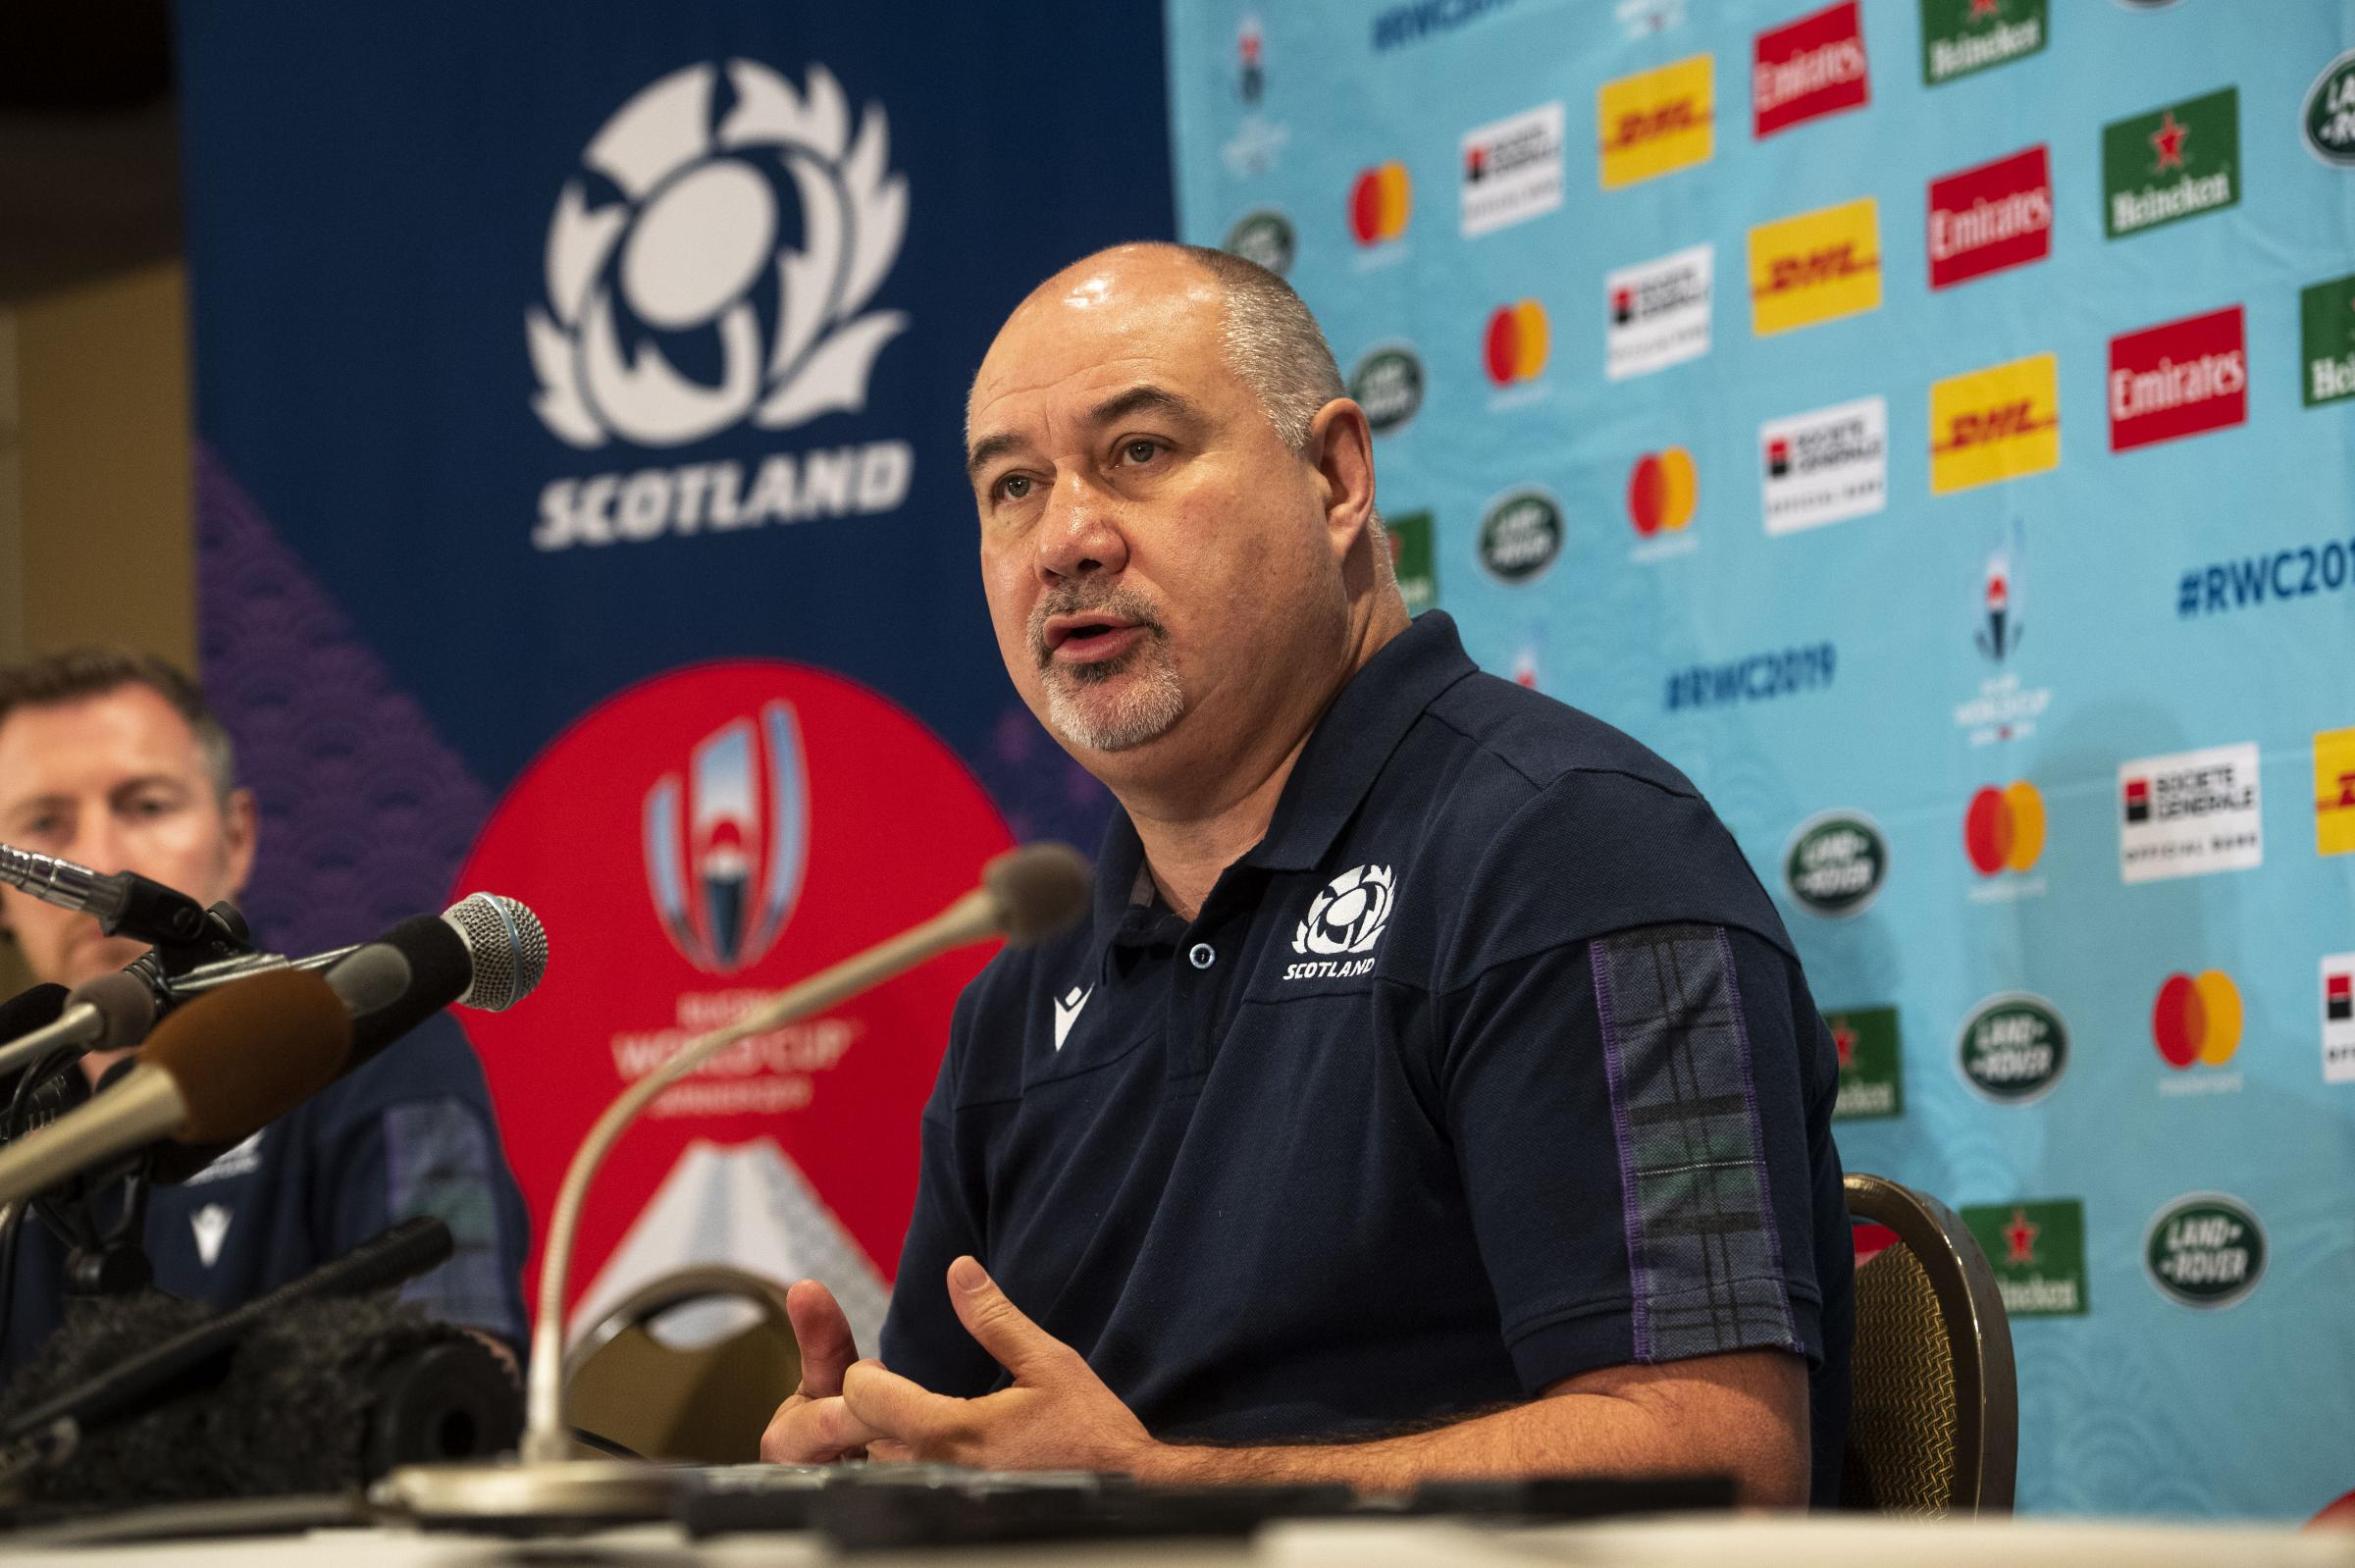 Scotland Rugby will not challenge World Cup reprimand over Mark Dodson's comments and will donate £70,000 to Typhoon Hagibis victims